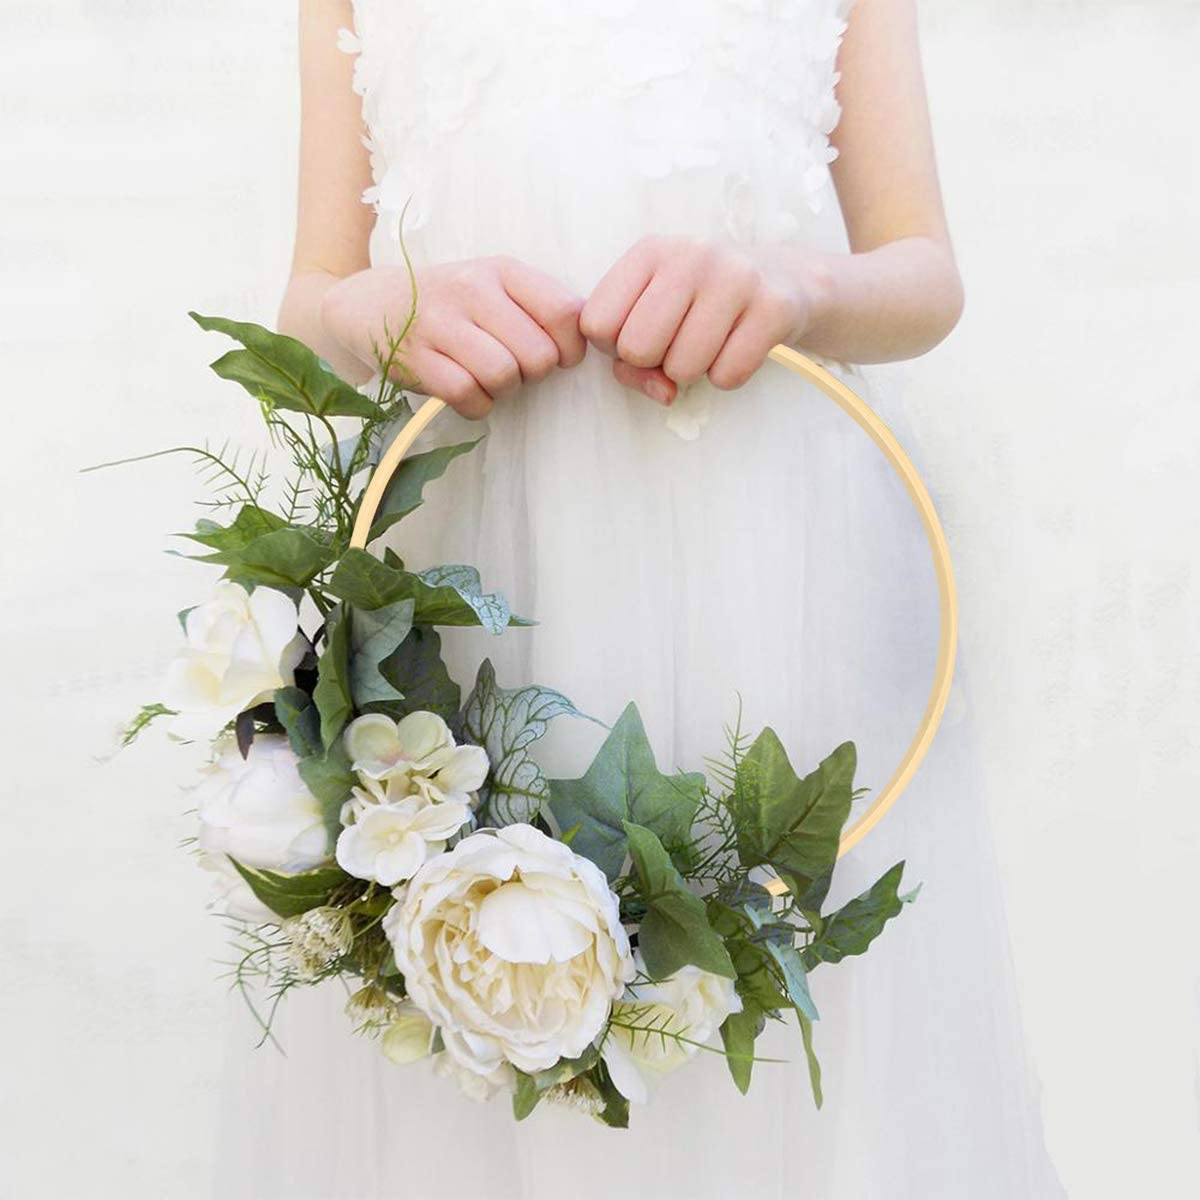 8, 10 /& 12 Inch Wooden Bamboo Floral Hoops Wreath Rings for Making Wedding Wreath Decor and Wall Hanging Craft Cralion 6pcs 3 Sizes